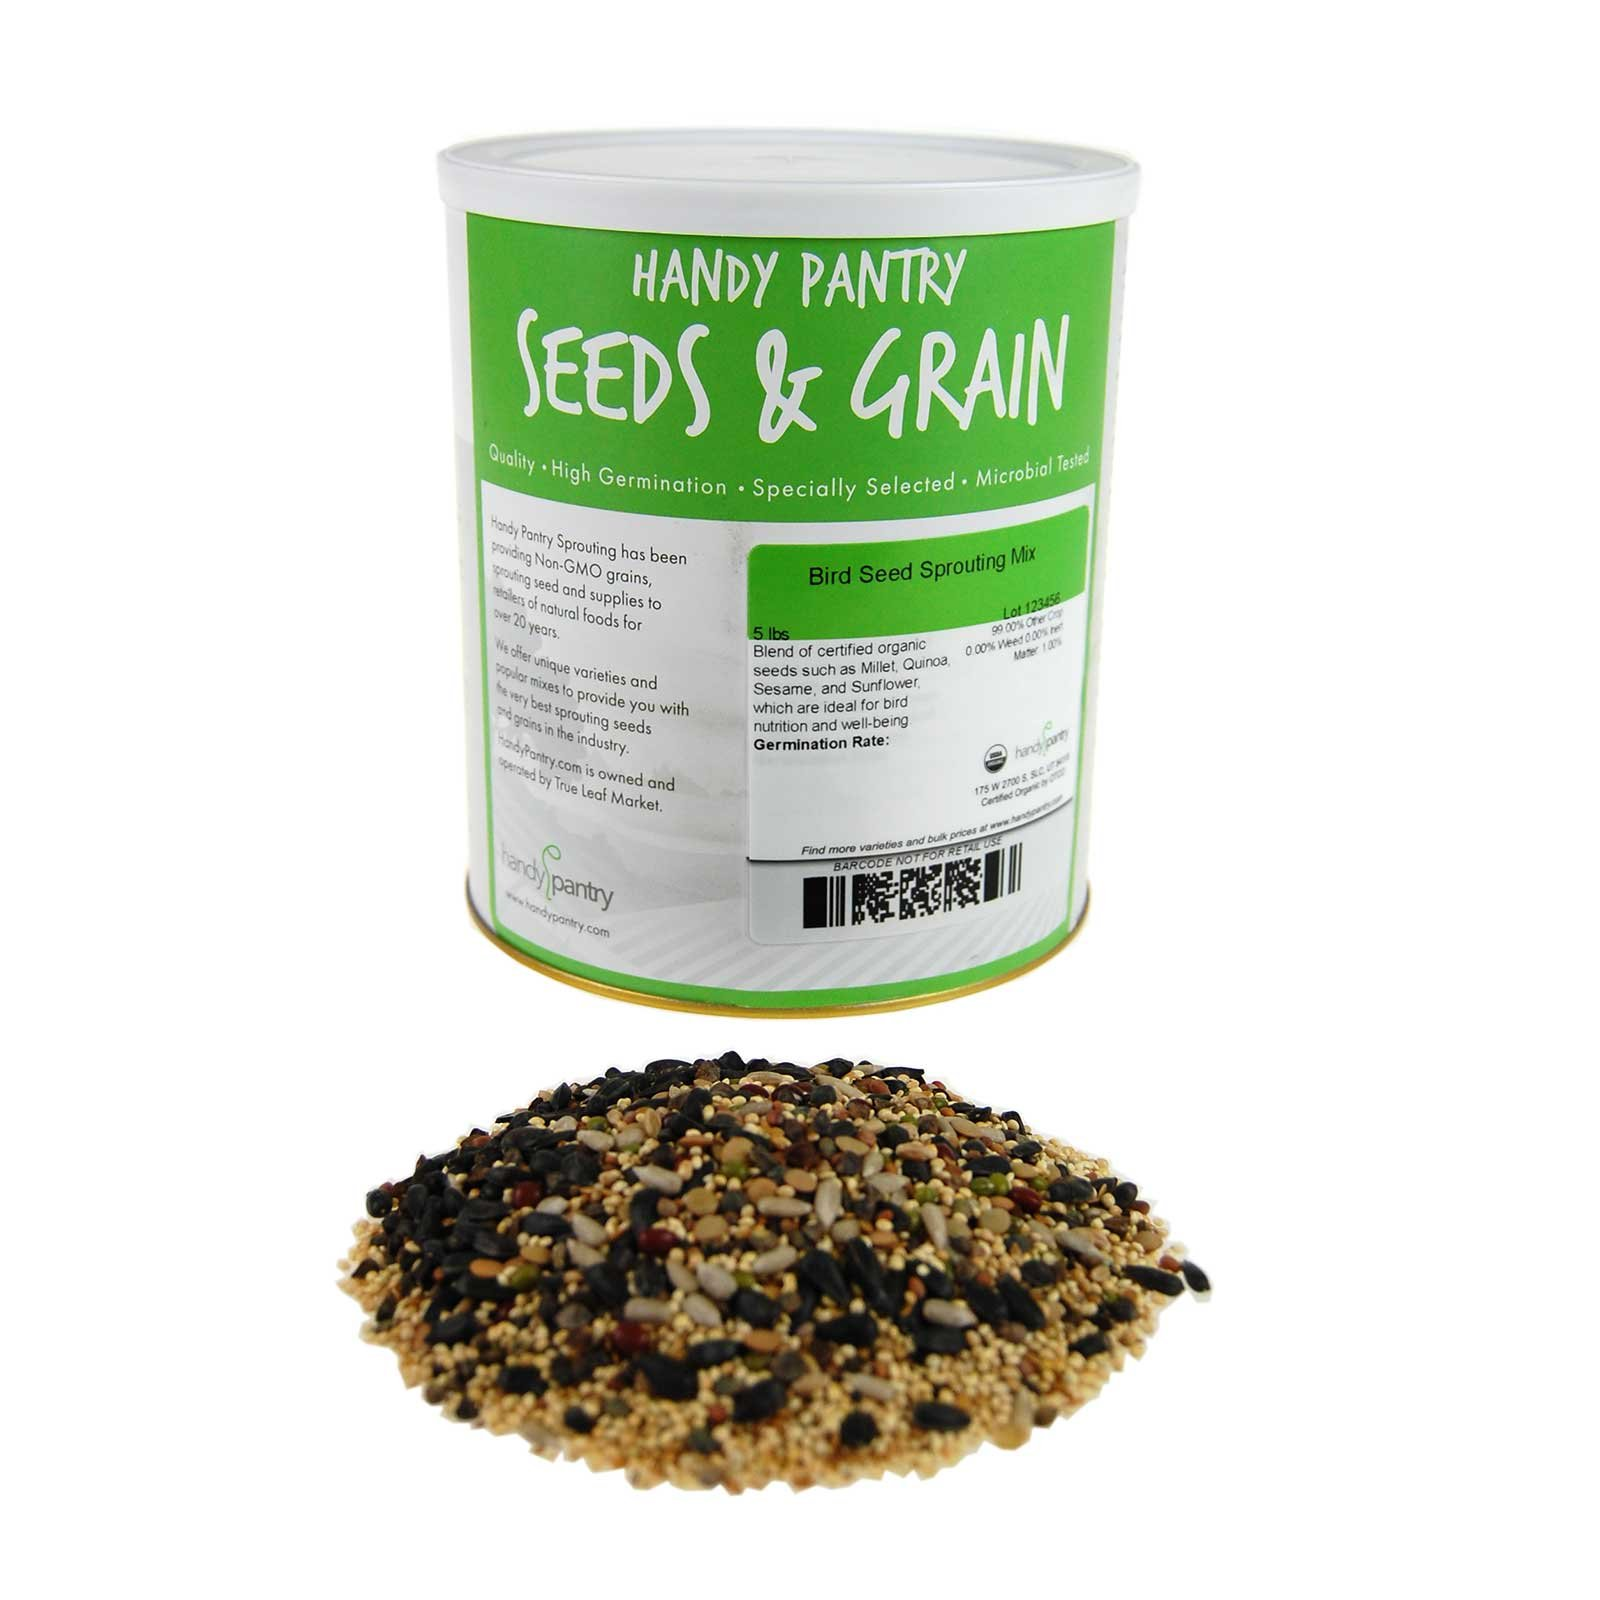 Handy Pantry Organic Birdseed - 5 Lb - Sprouting Bird Seed Mix for Small, Medium & Large Birds- Feed for Songbirds, Parakeets, Parrots, etc by Handy Pantry